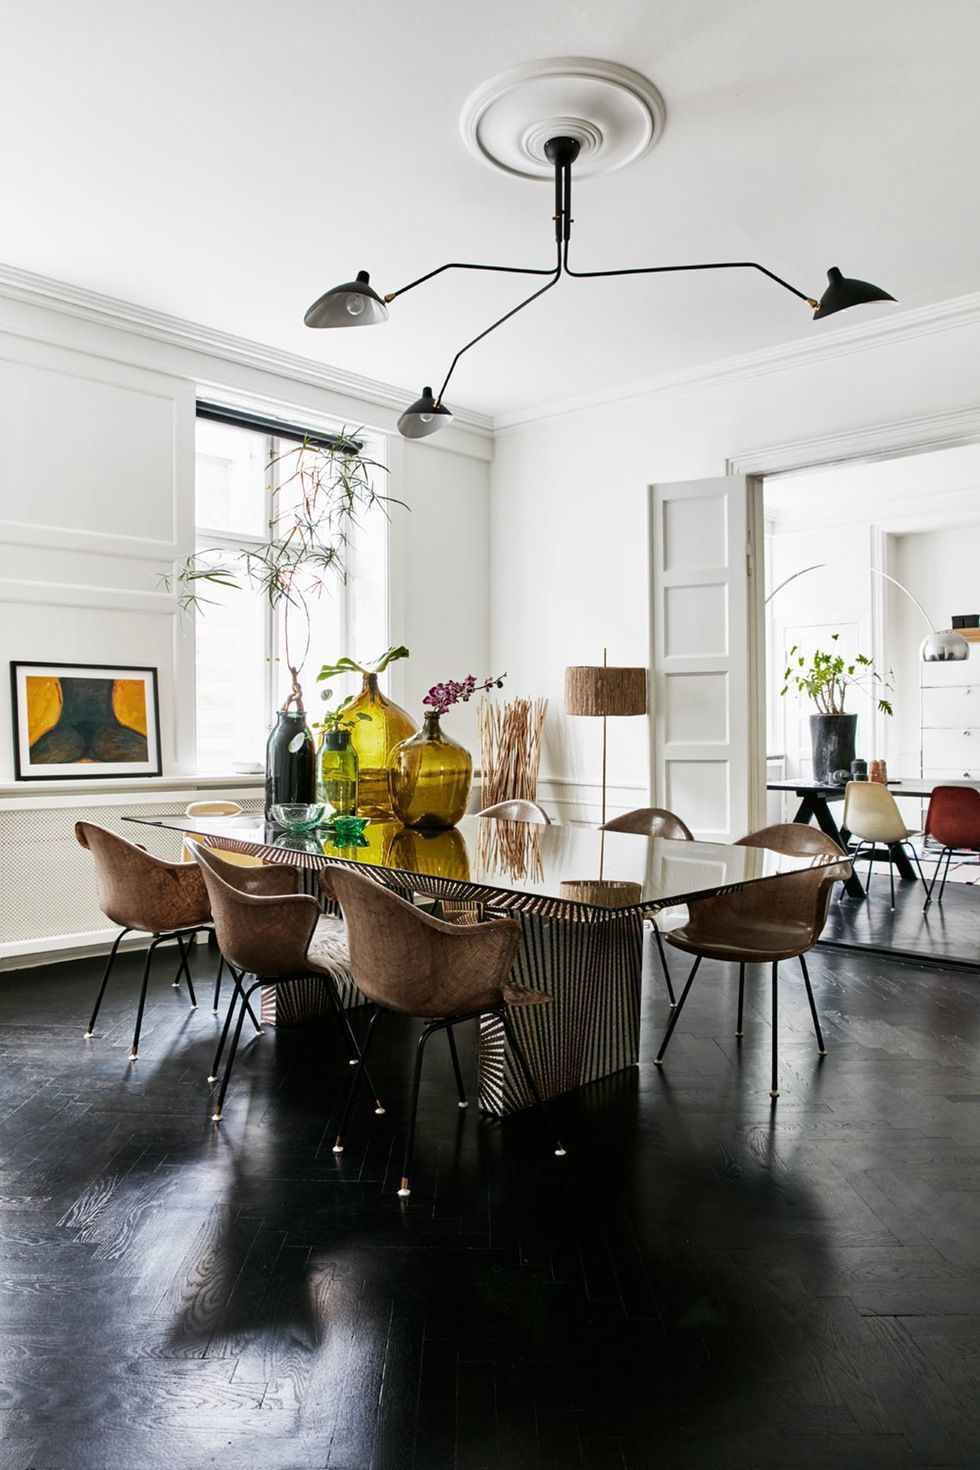 Modern boho home interiors and design ideas from the best in condos penthouses and architecture